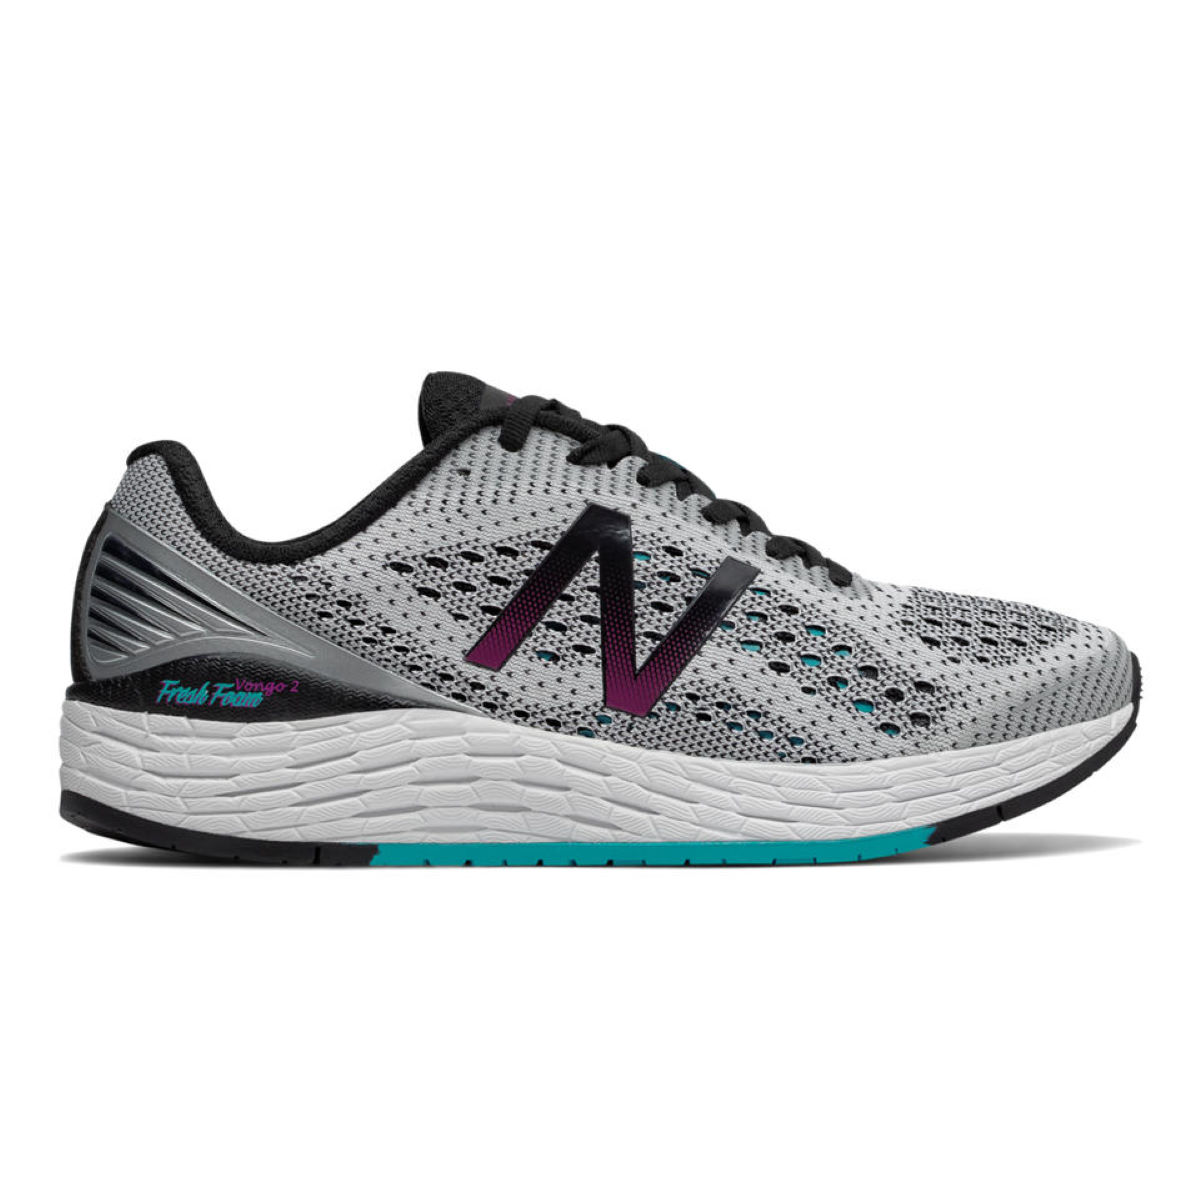 Chaussures Femme New Balance Fresh Foam Vongo - UK 4.5 Blanc